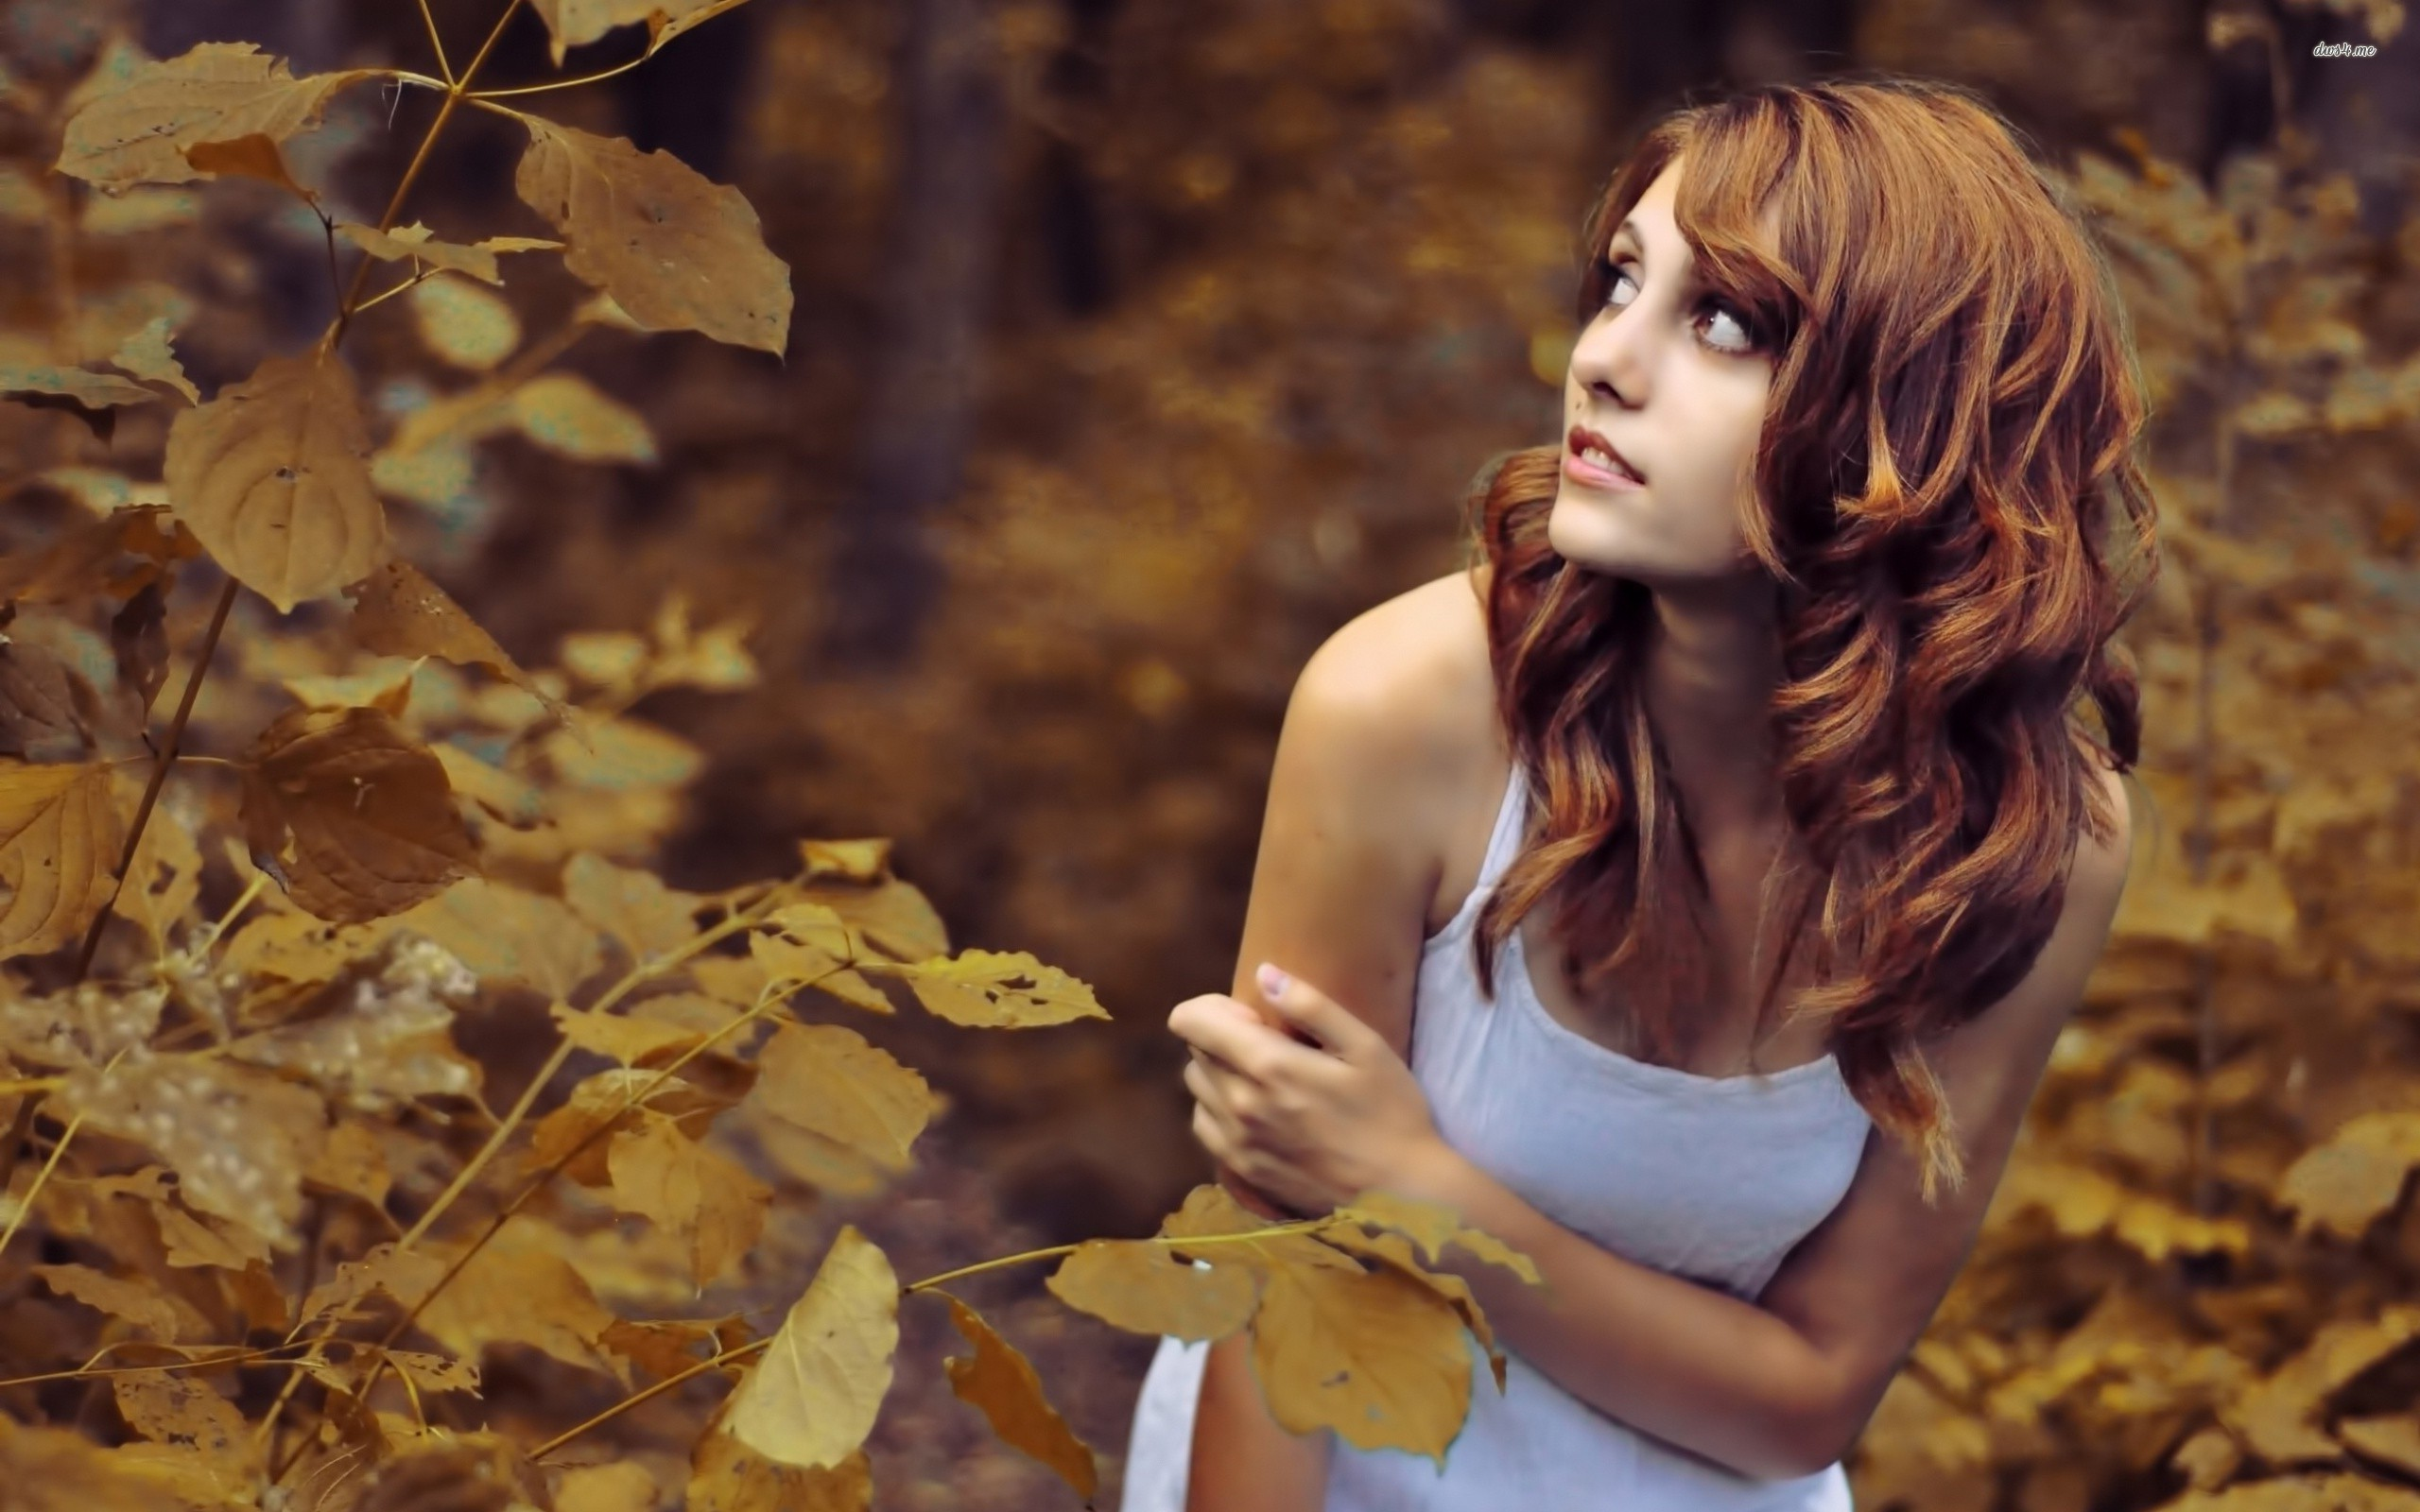 Fall Bird Feeder Wallpaper Brunette Tank Top Hd Girls 4k Wallpapers Images